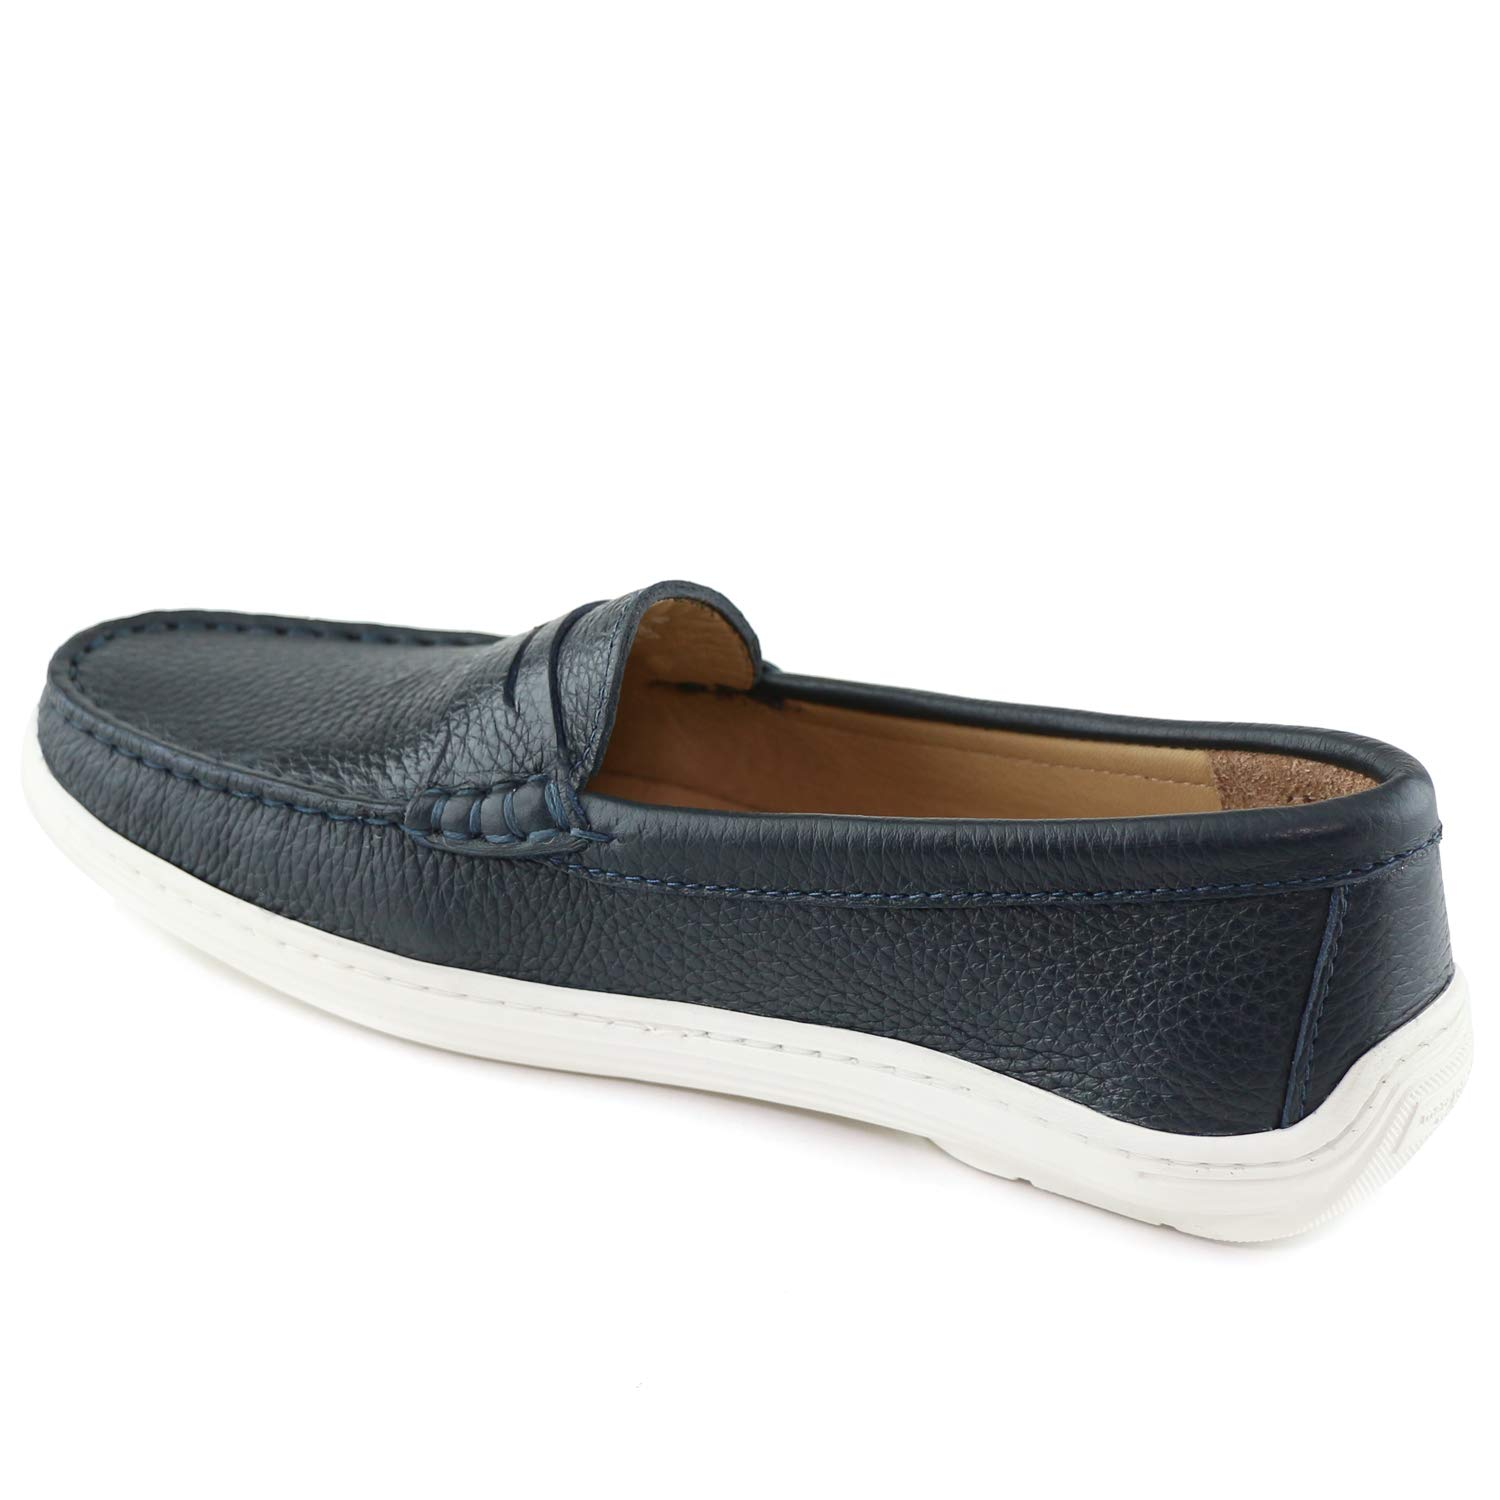 MARC JOSEPH NEW YORK Kids Boys/Girls Casual Comfort Slip On Penny Loafer Navy Grainy 5.5 by MARC JOSEPH NEW YORK (Image #2)